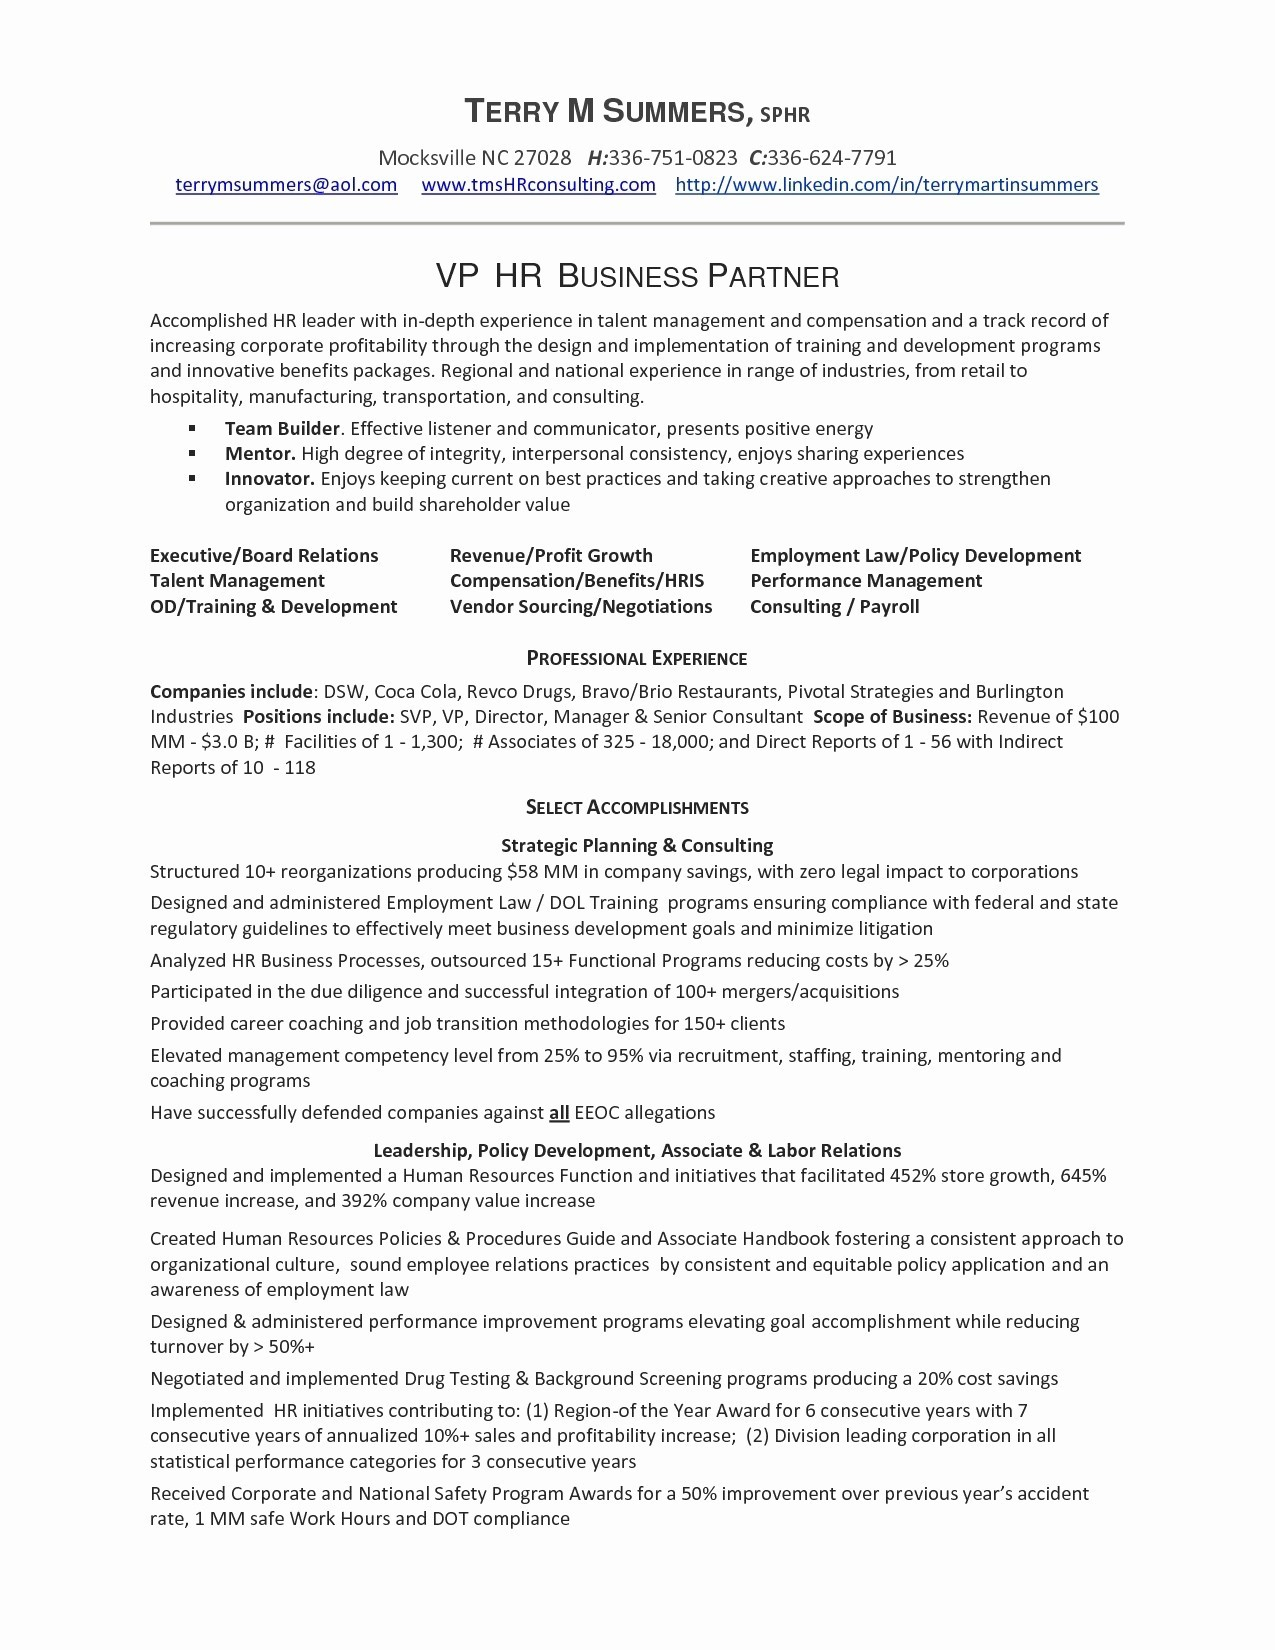 Resume Template Bartender - 20 Best Bartender Resume